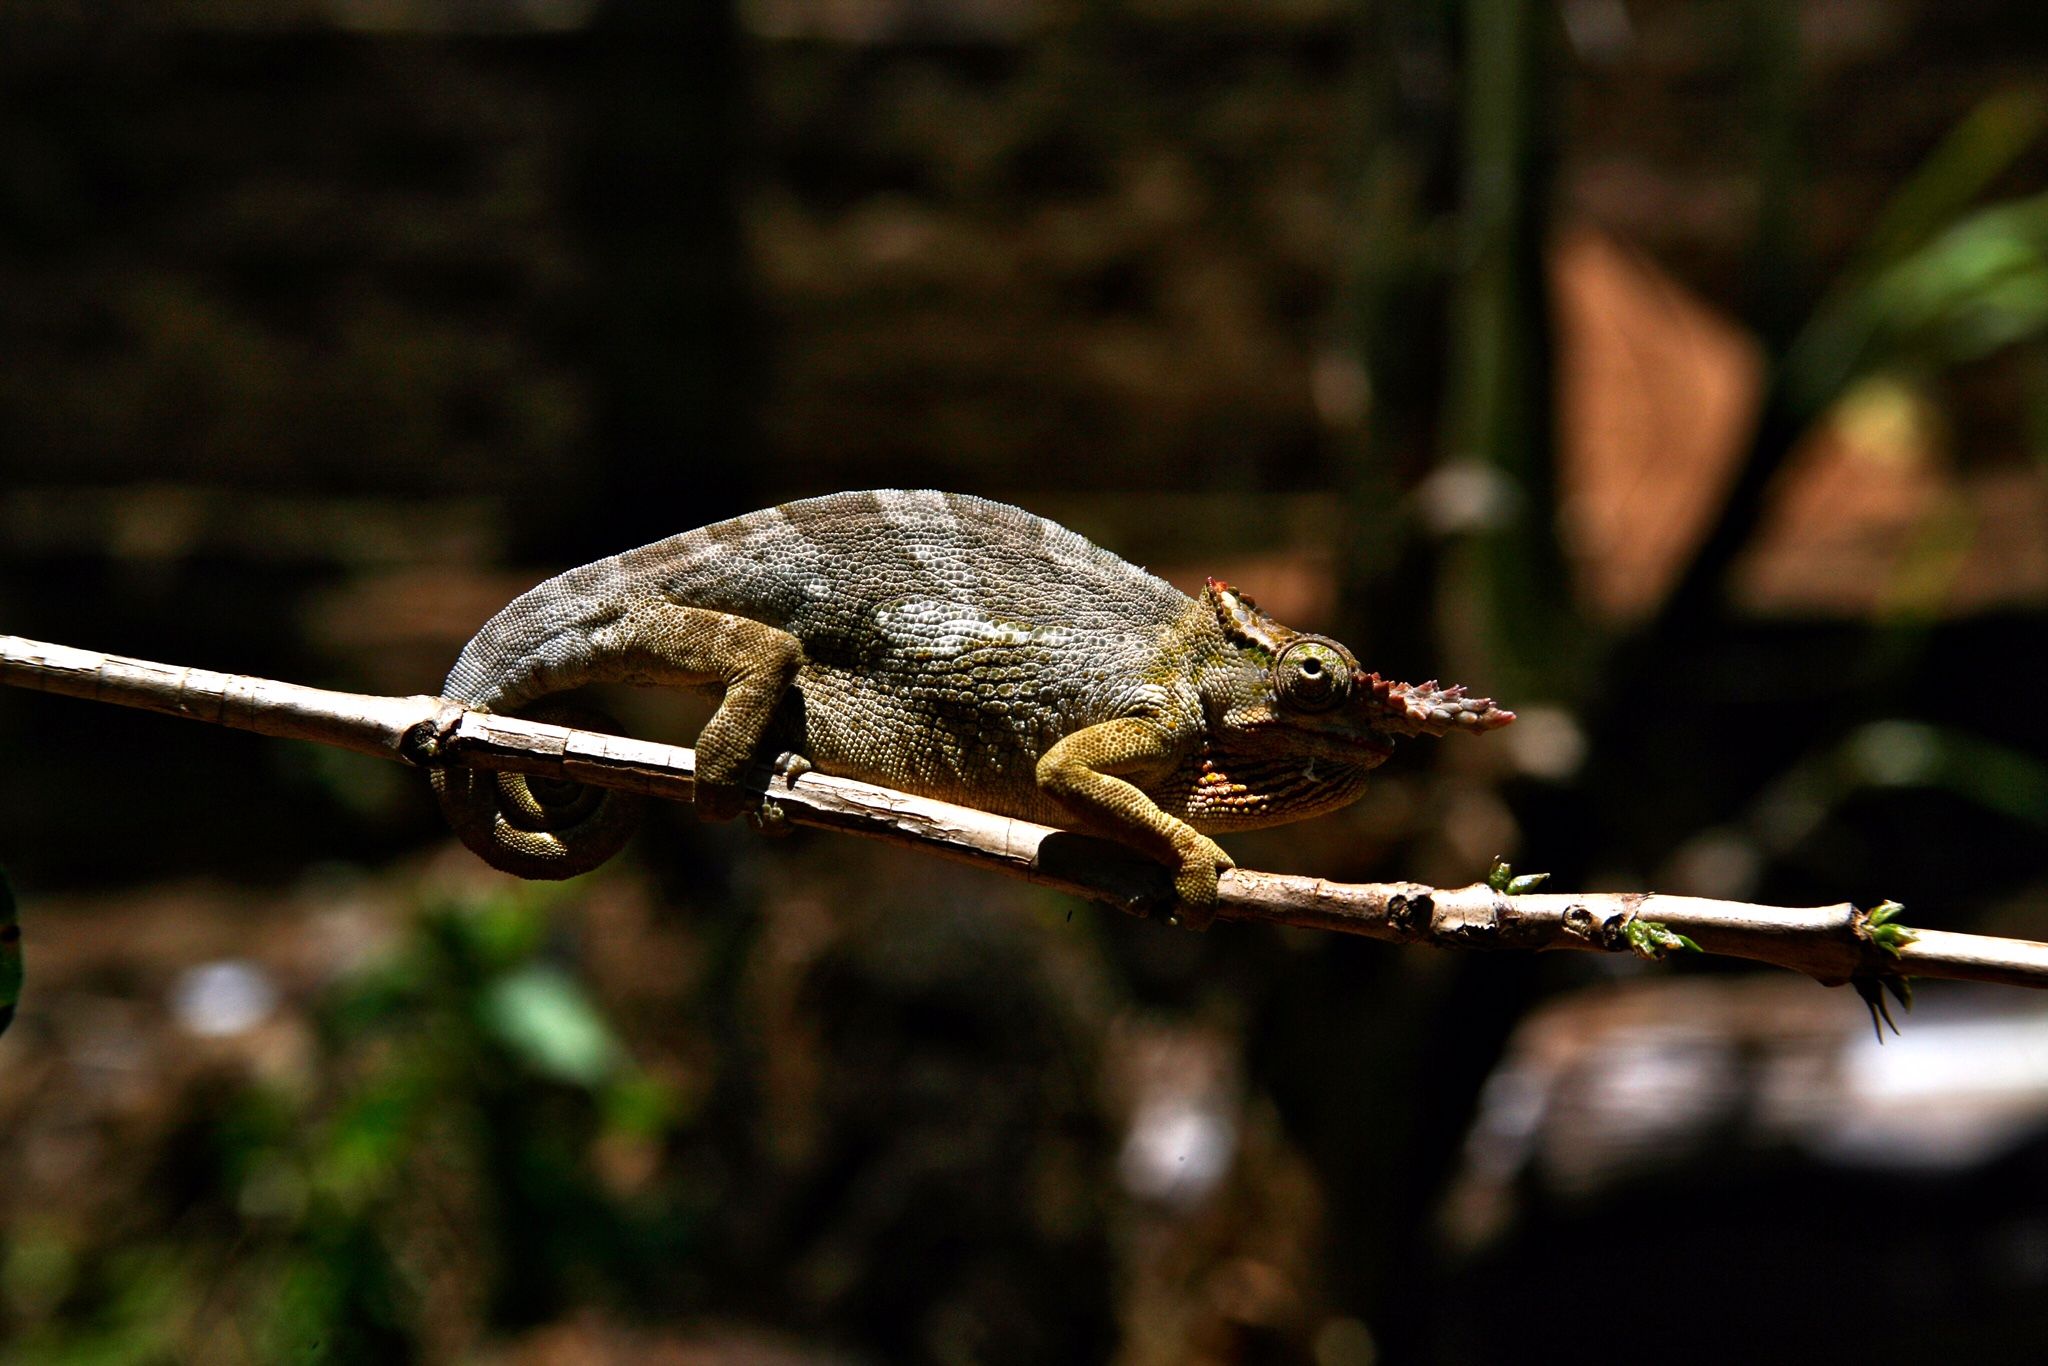 Reptile in Mount Kilimanjaro National Park